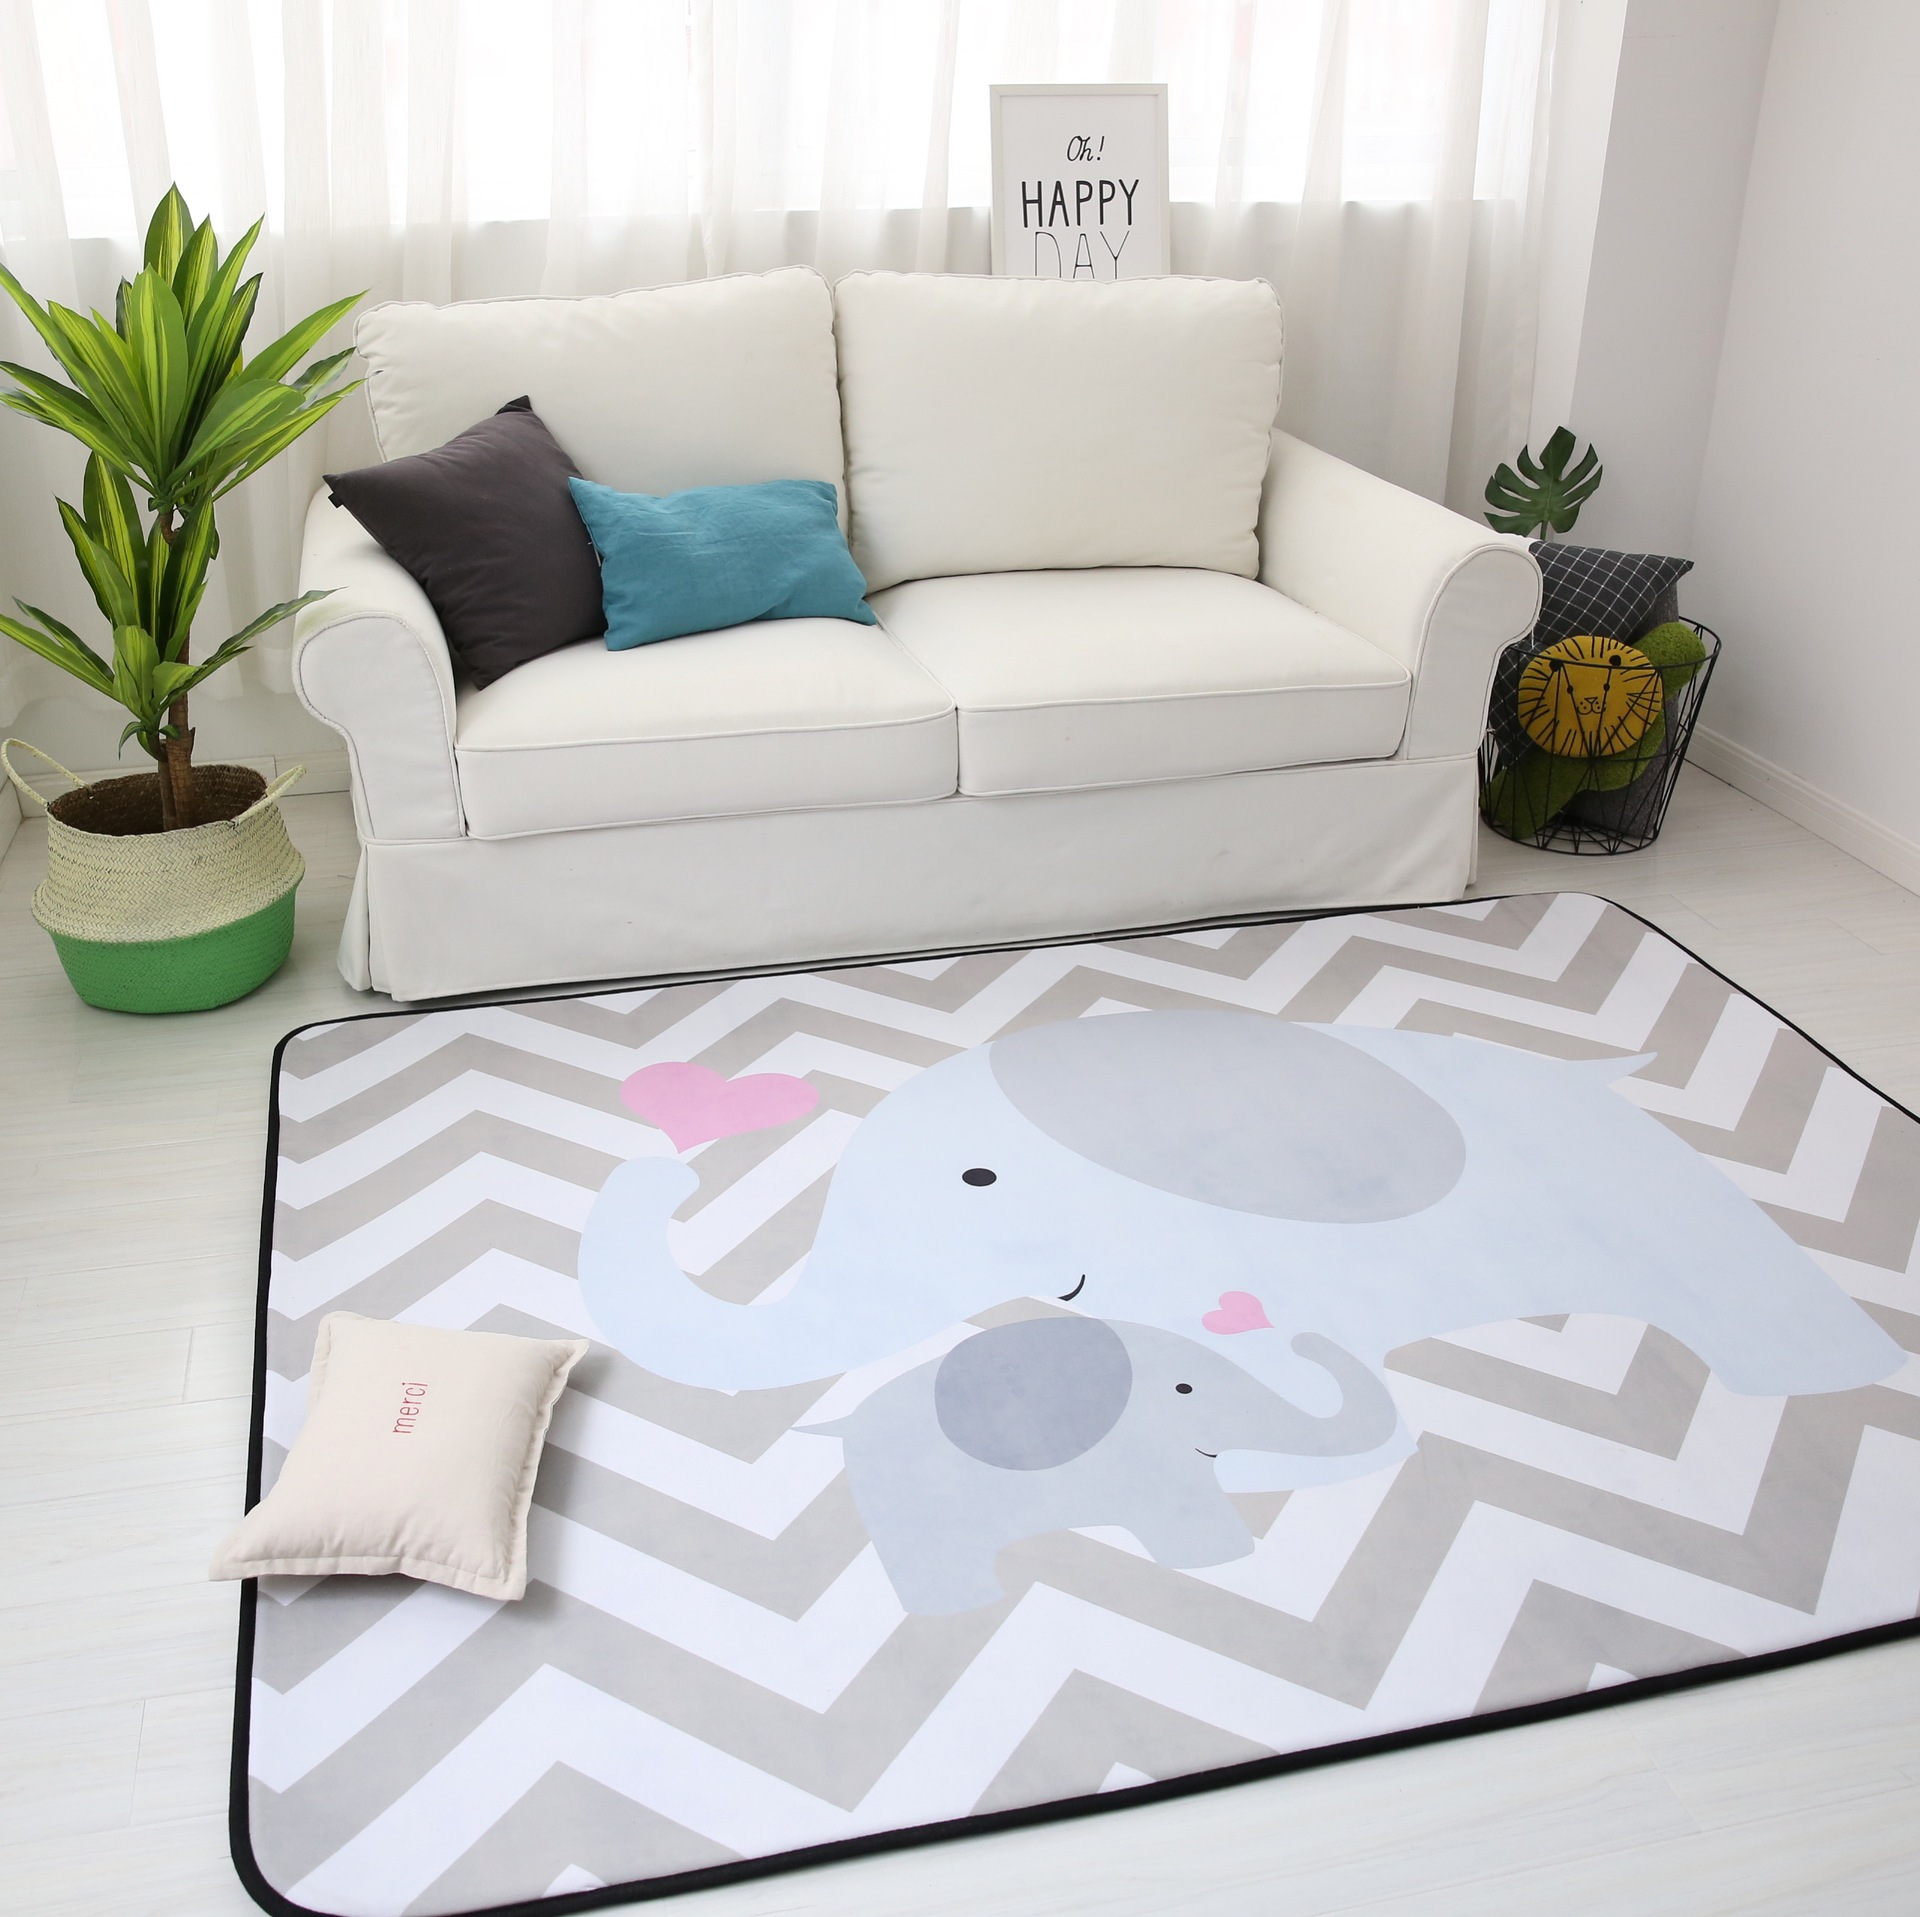 150X200CM Thick Cartoon Carpets For Living Room Soft Rugs For